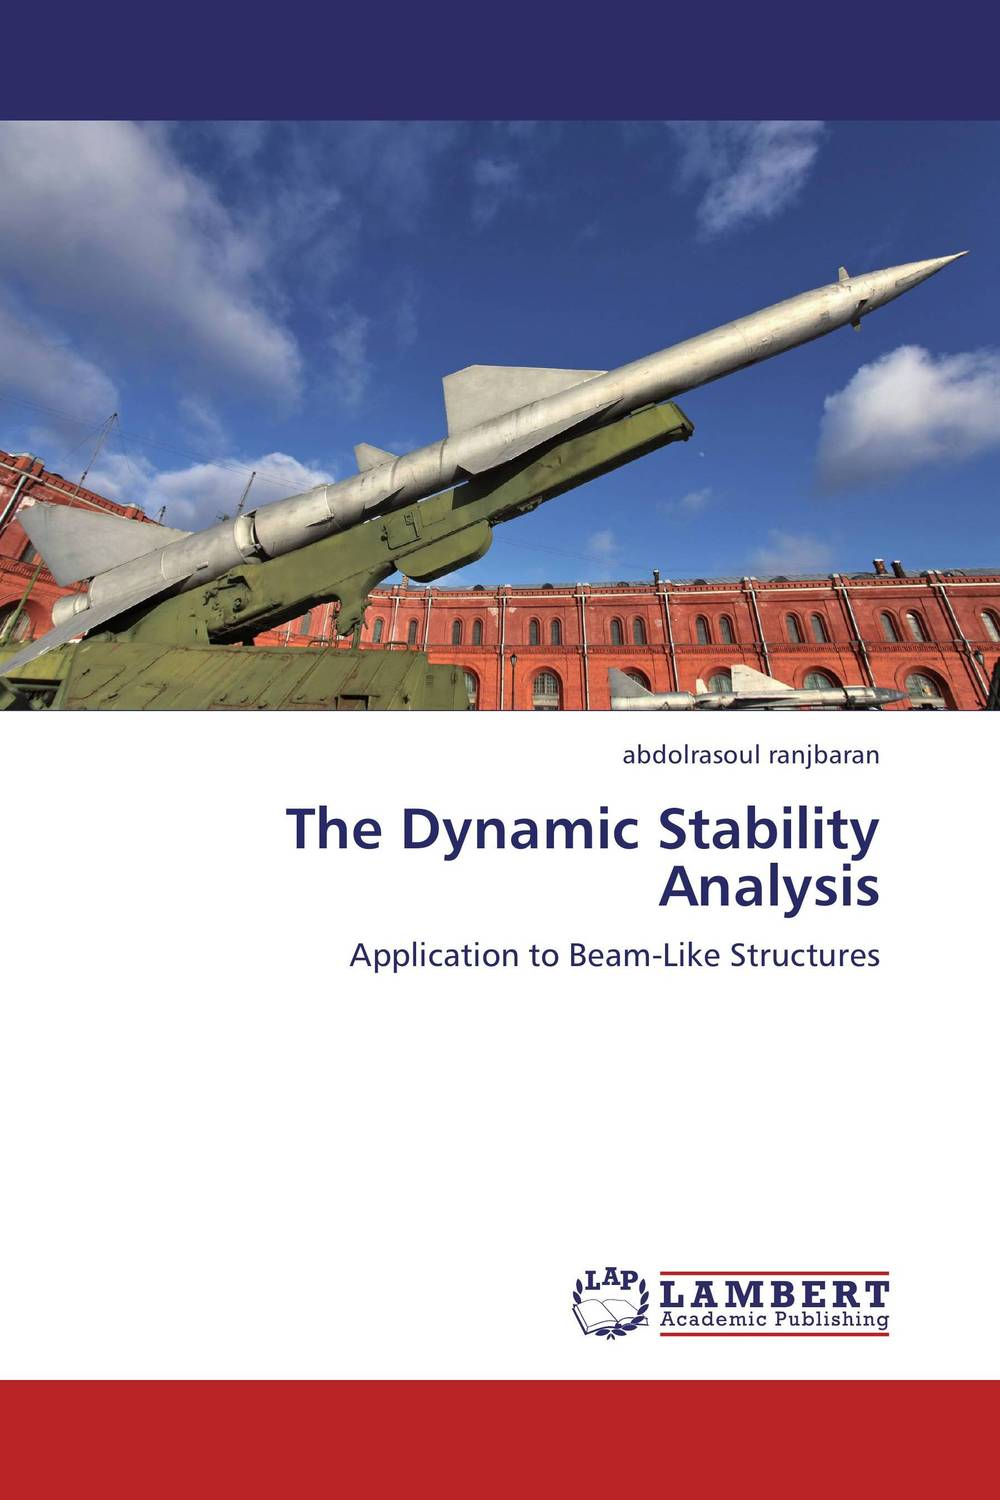 The Dynamic Stability Analysis dynamic analysis and failure modes of simple structures